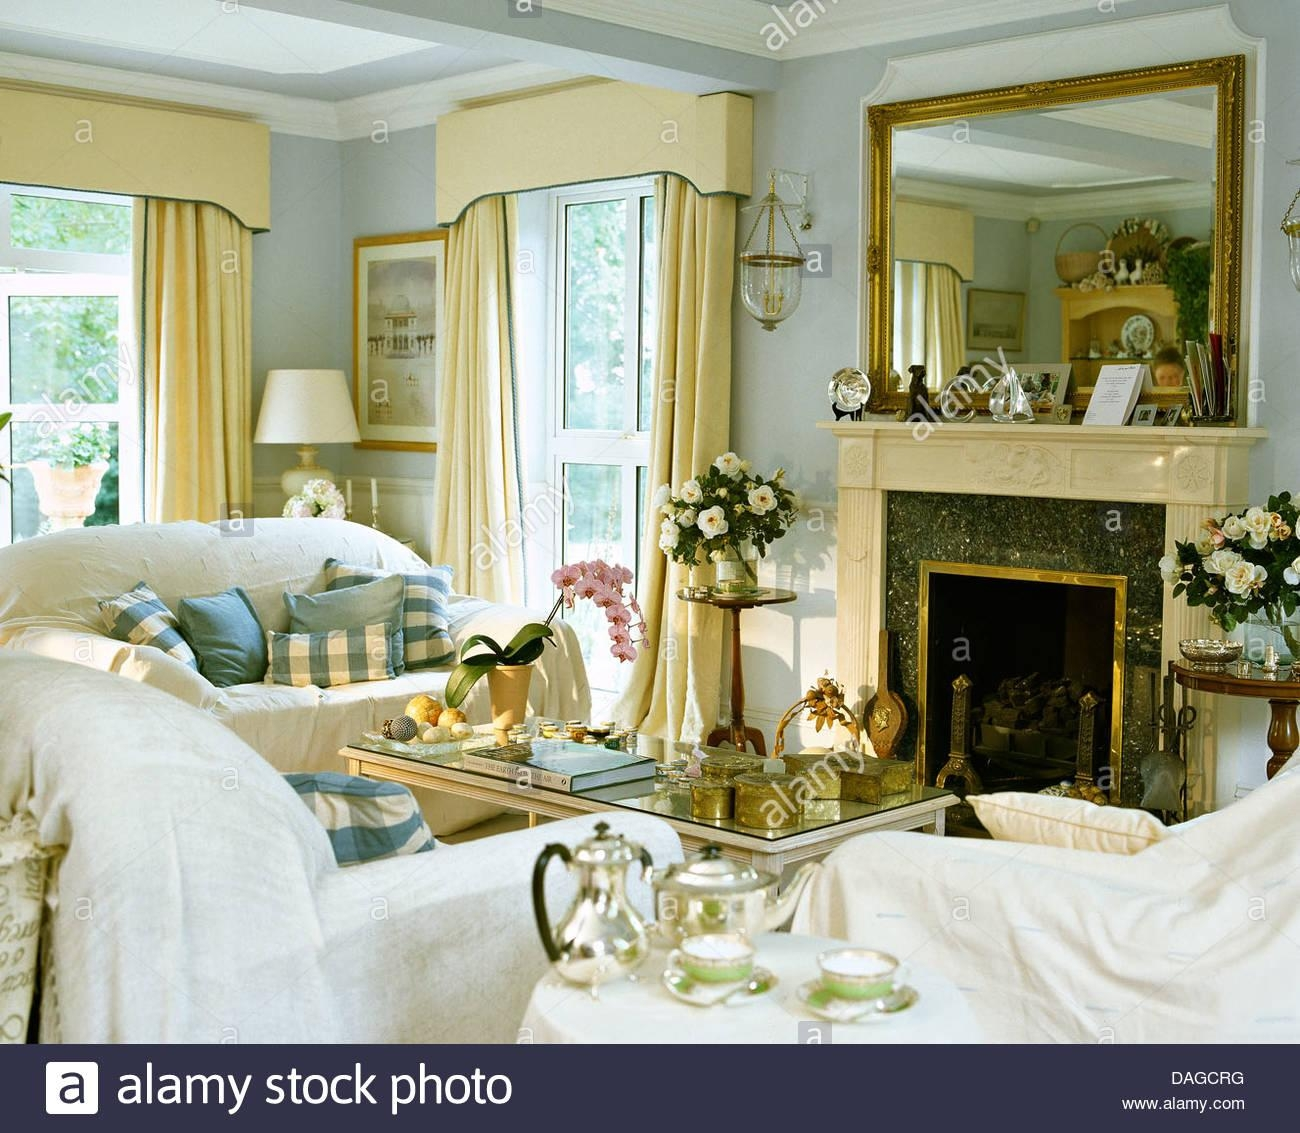 White Throws On Sofas In Pale Blue Living Room With Large Mirror Throughout Mirror Above Sofas (View 19 of 20)